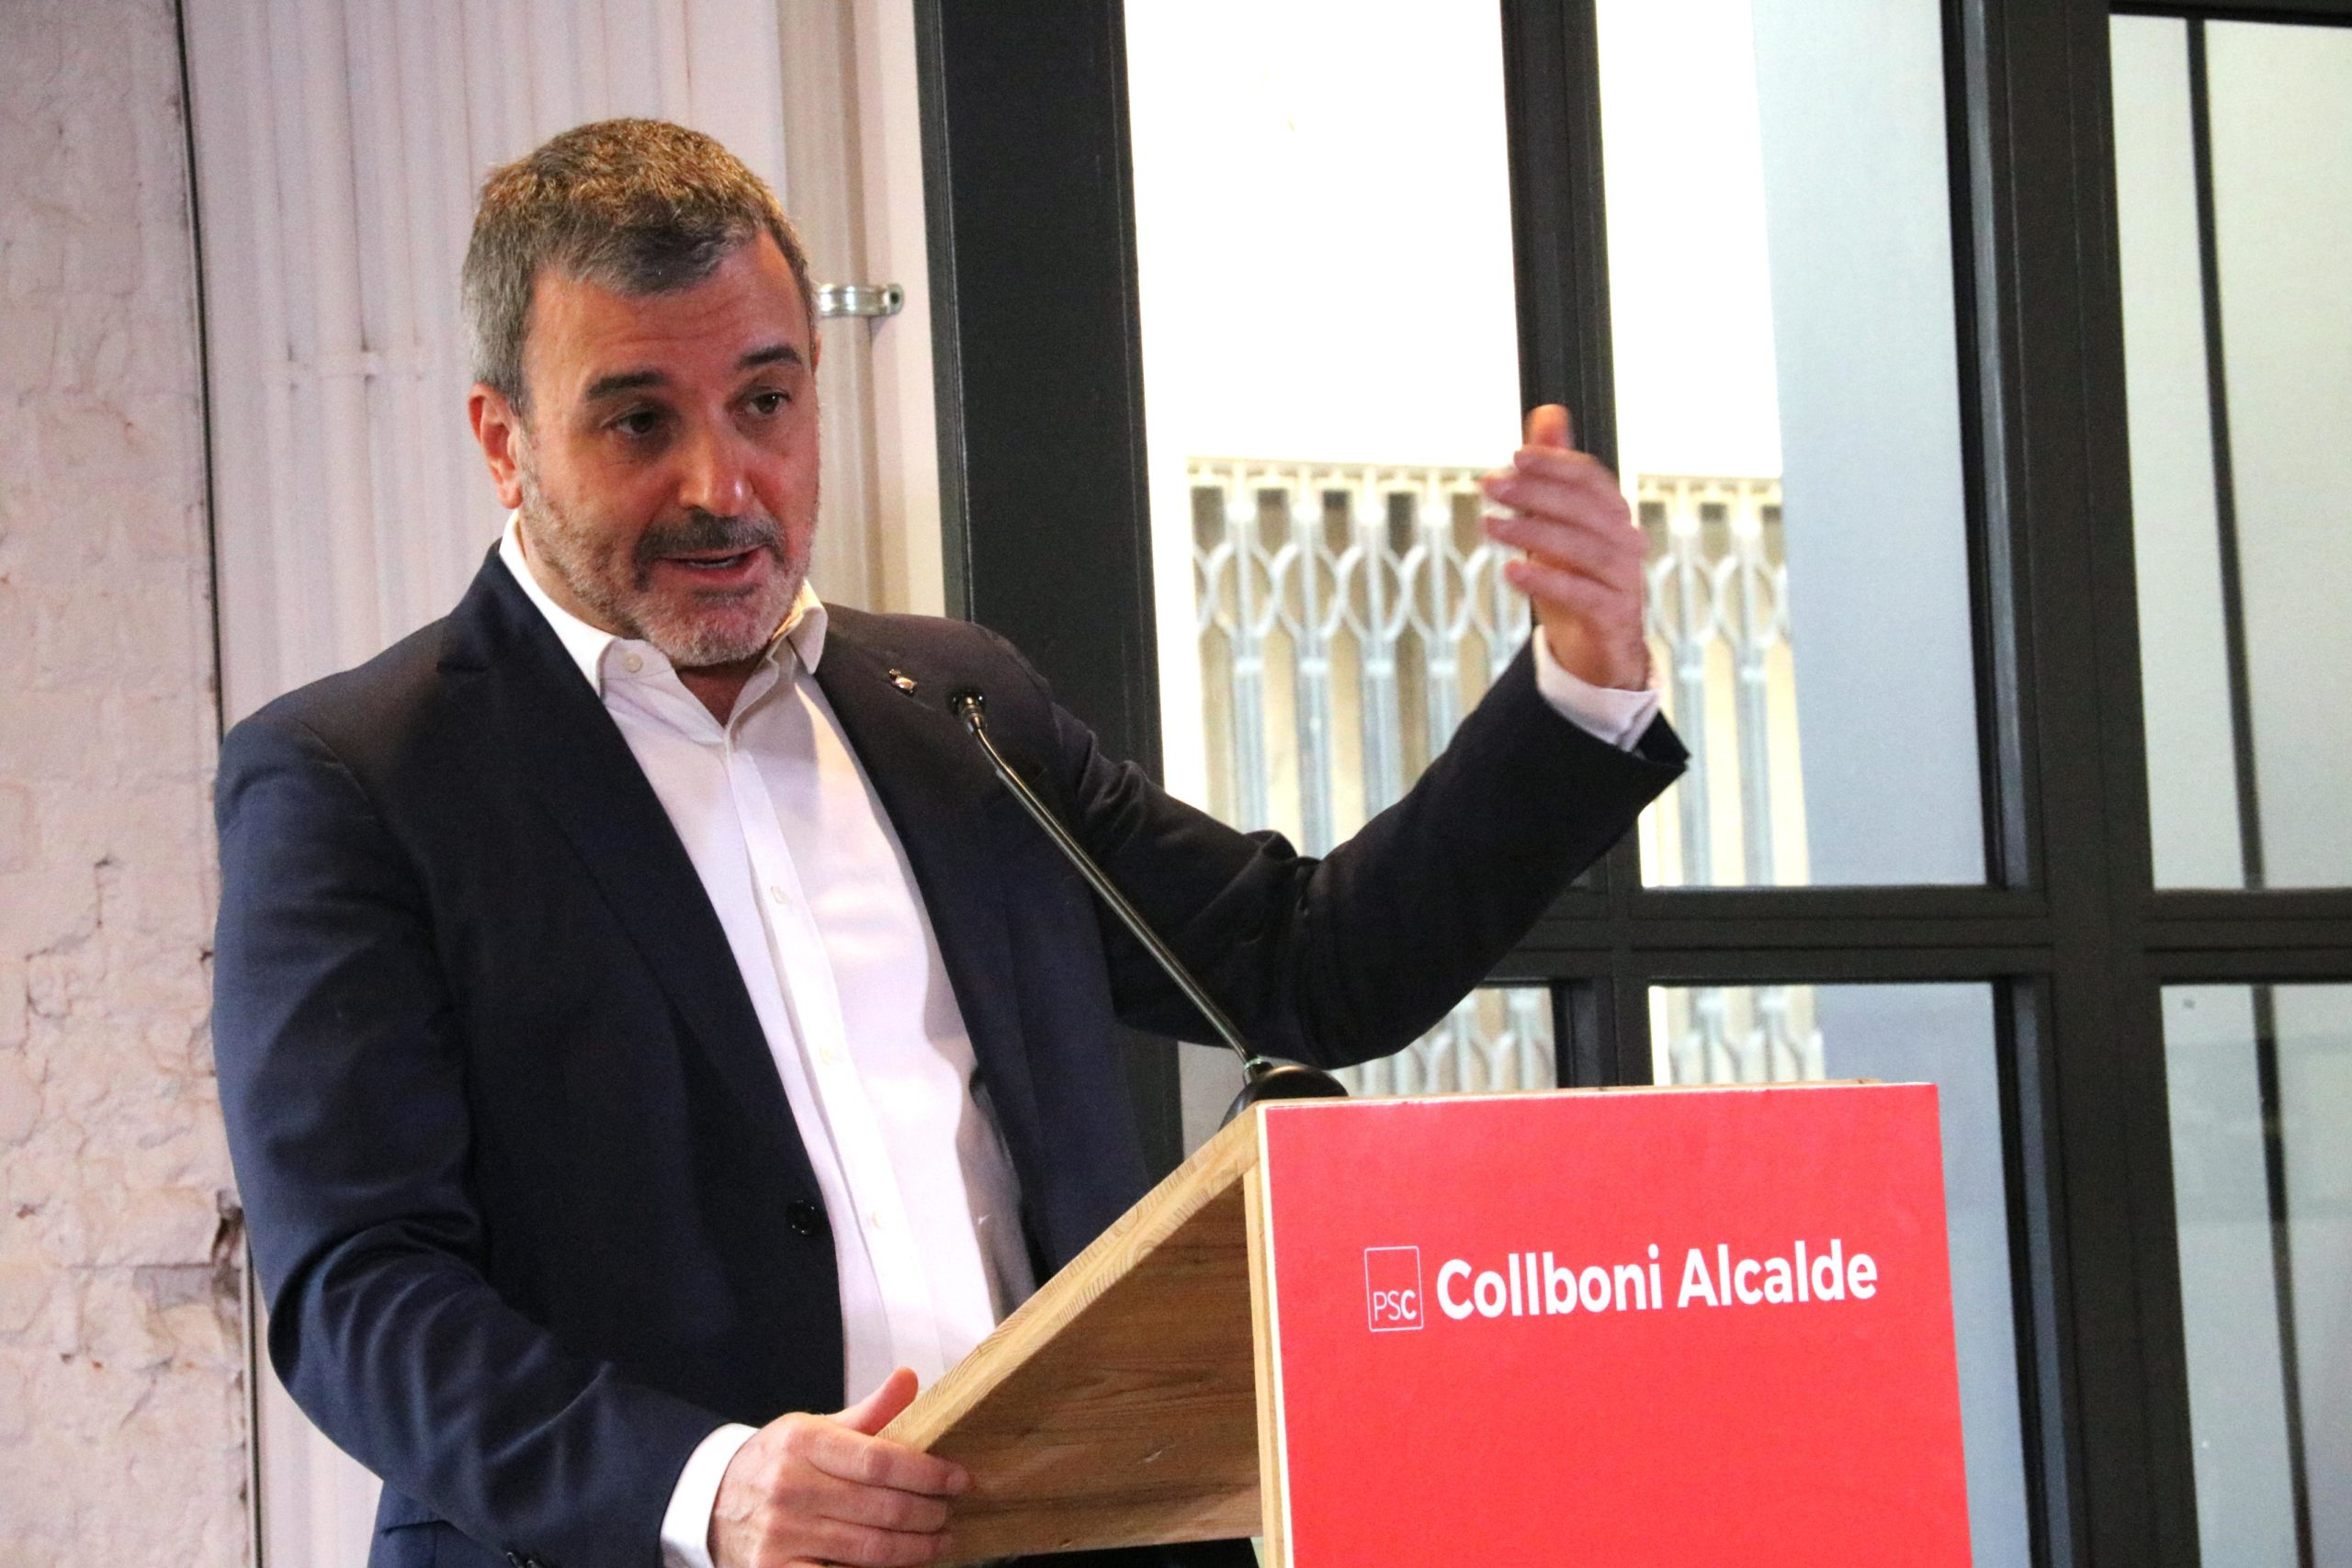 La pintada que ha denunciat l'alcaldable Jaume Collboni. 8-4-2019 | Jaume Collboni